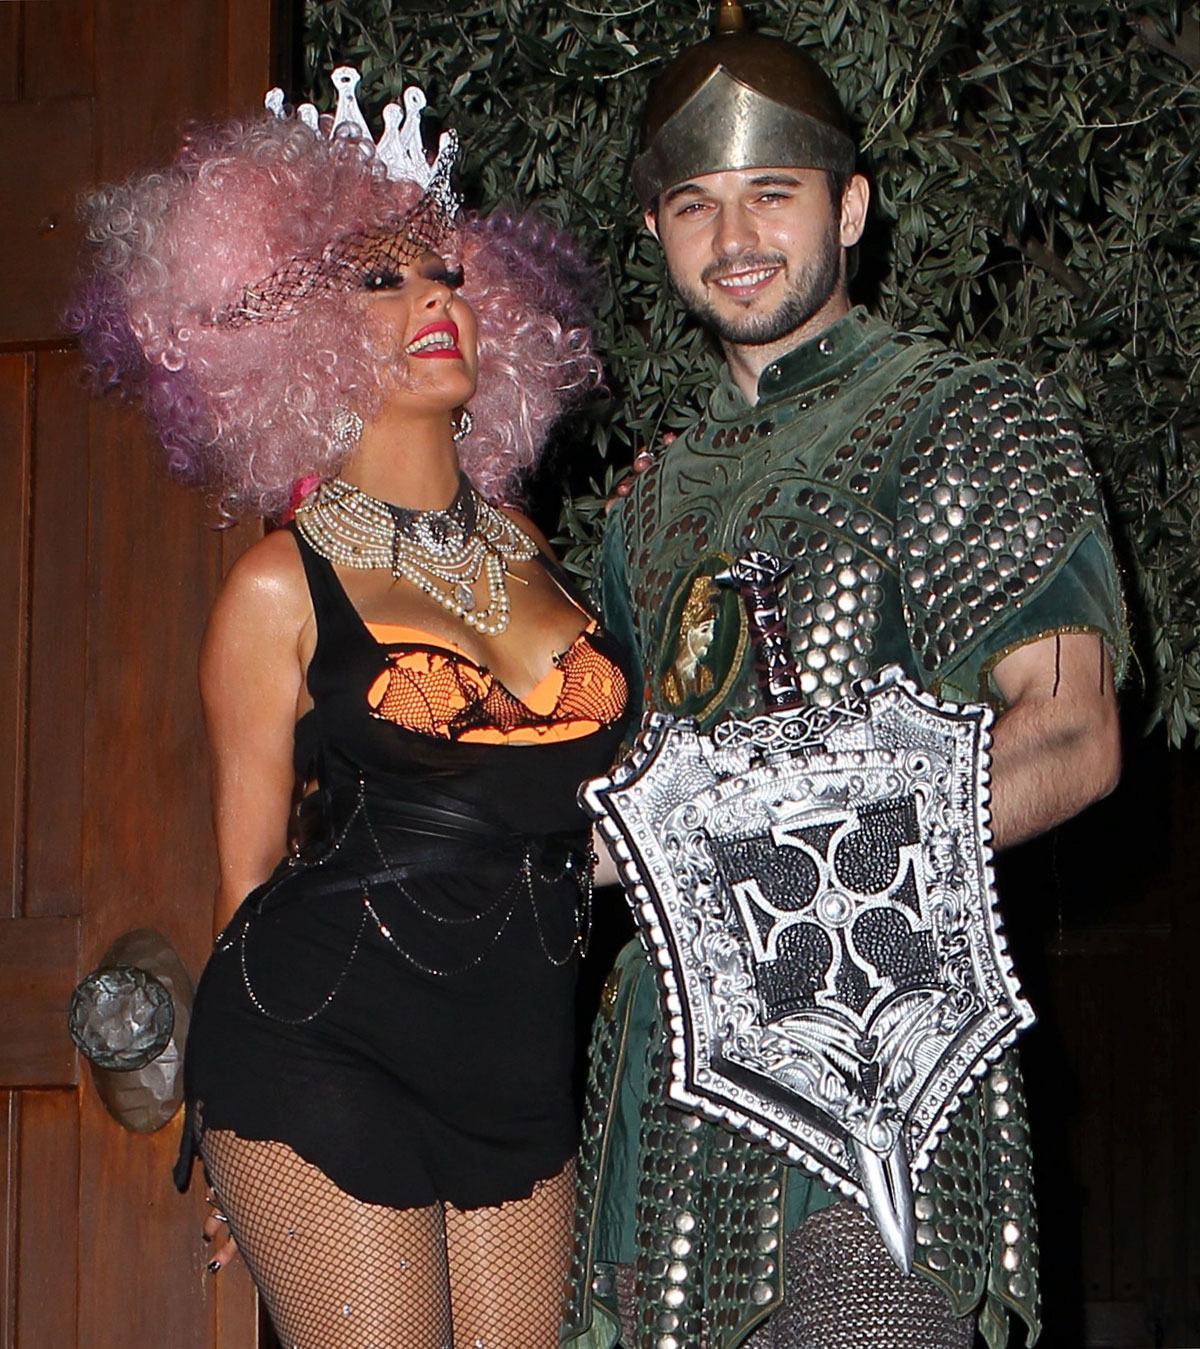 CHRISTINA AGUILERA at Halloween Party  sc 1 st  HawtCelebs & CHRISTINA AGUILERA at Halloween Party at Her Home in Beverly Hills ...